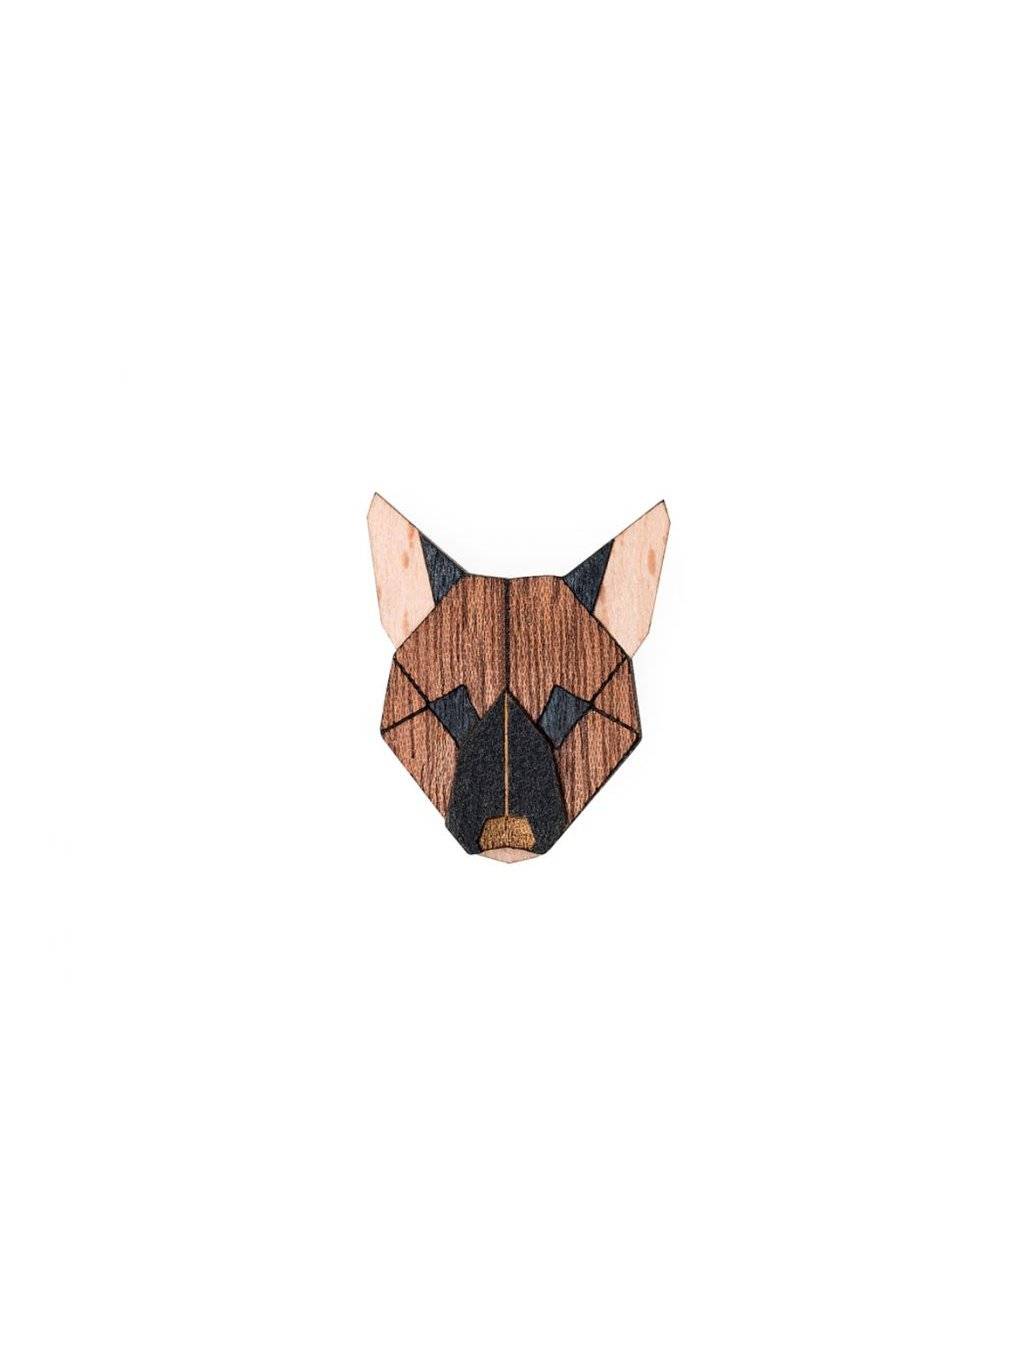 0 german shepherd brooch